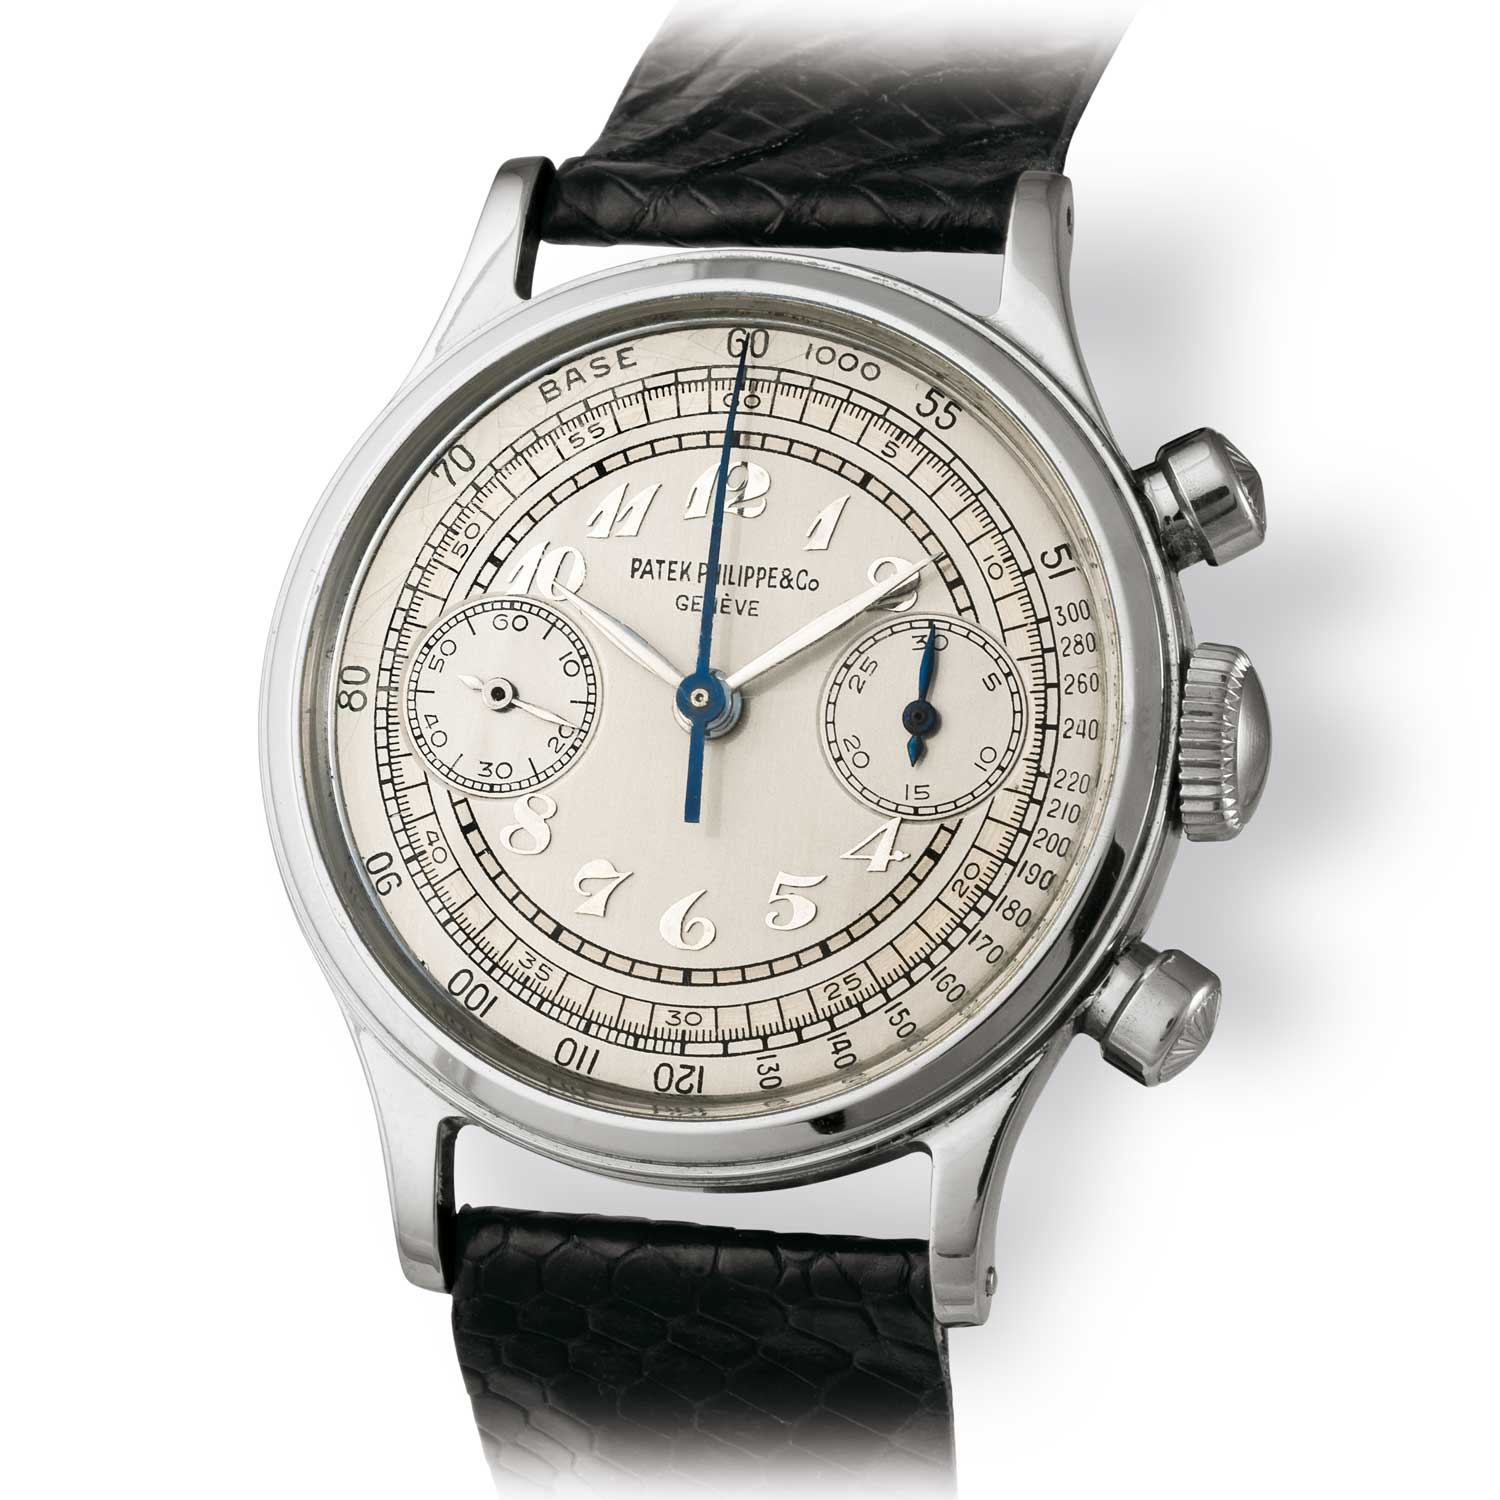 Patek Philippe ref. 1463 steel chronograph with Breguet numerals (Image: John Goldberger)